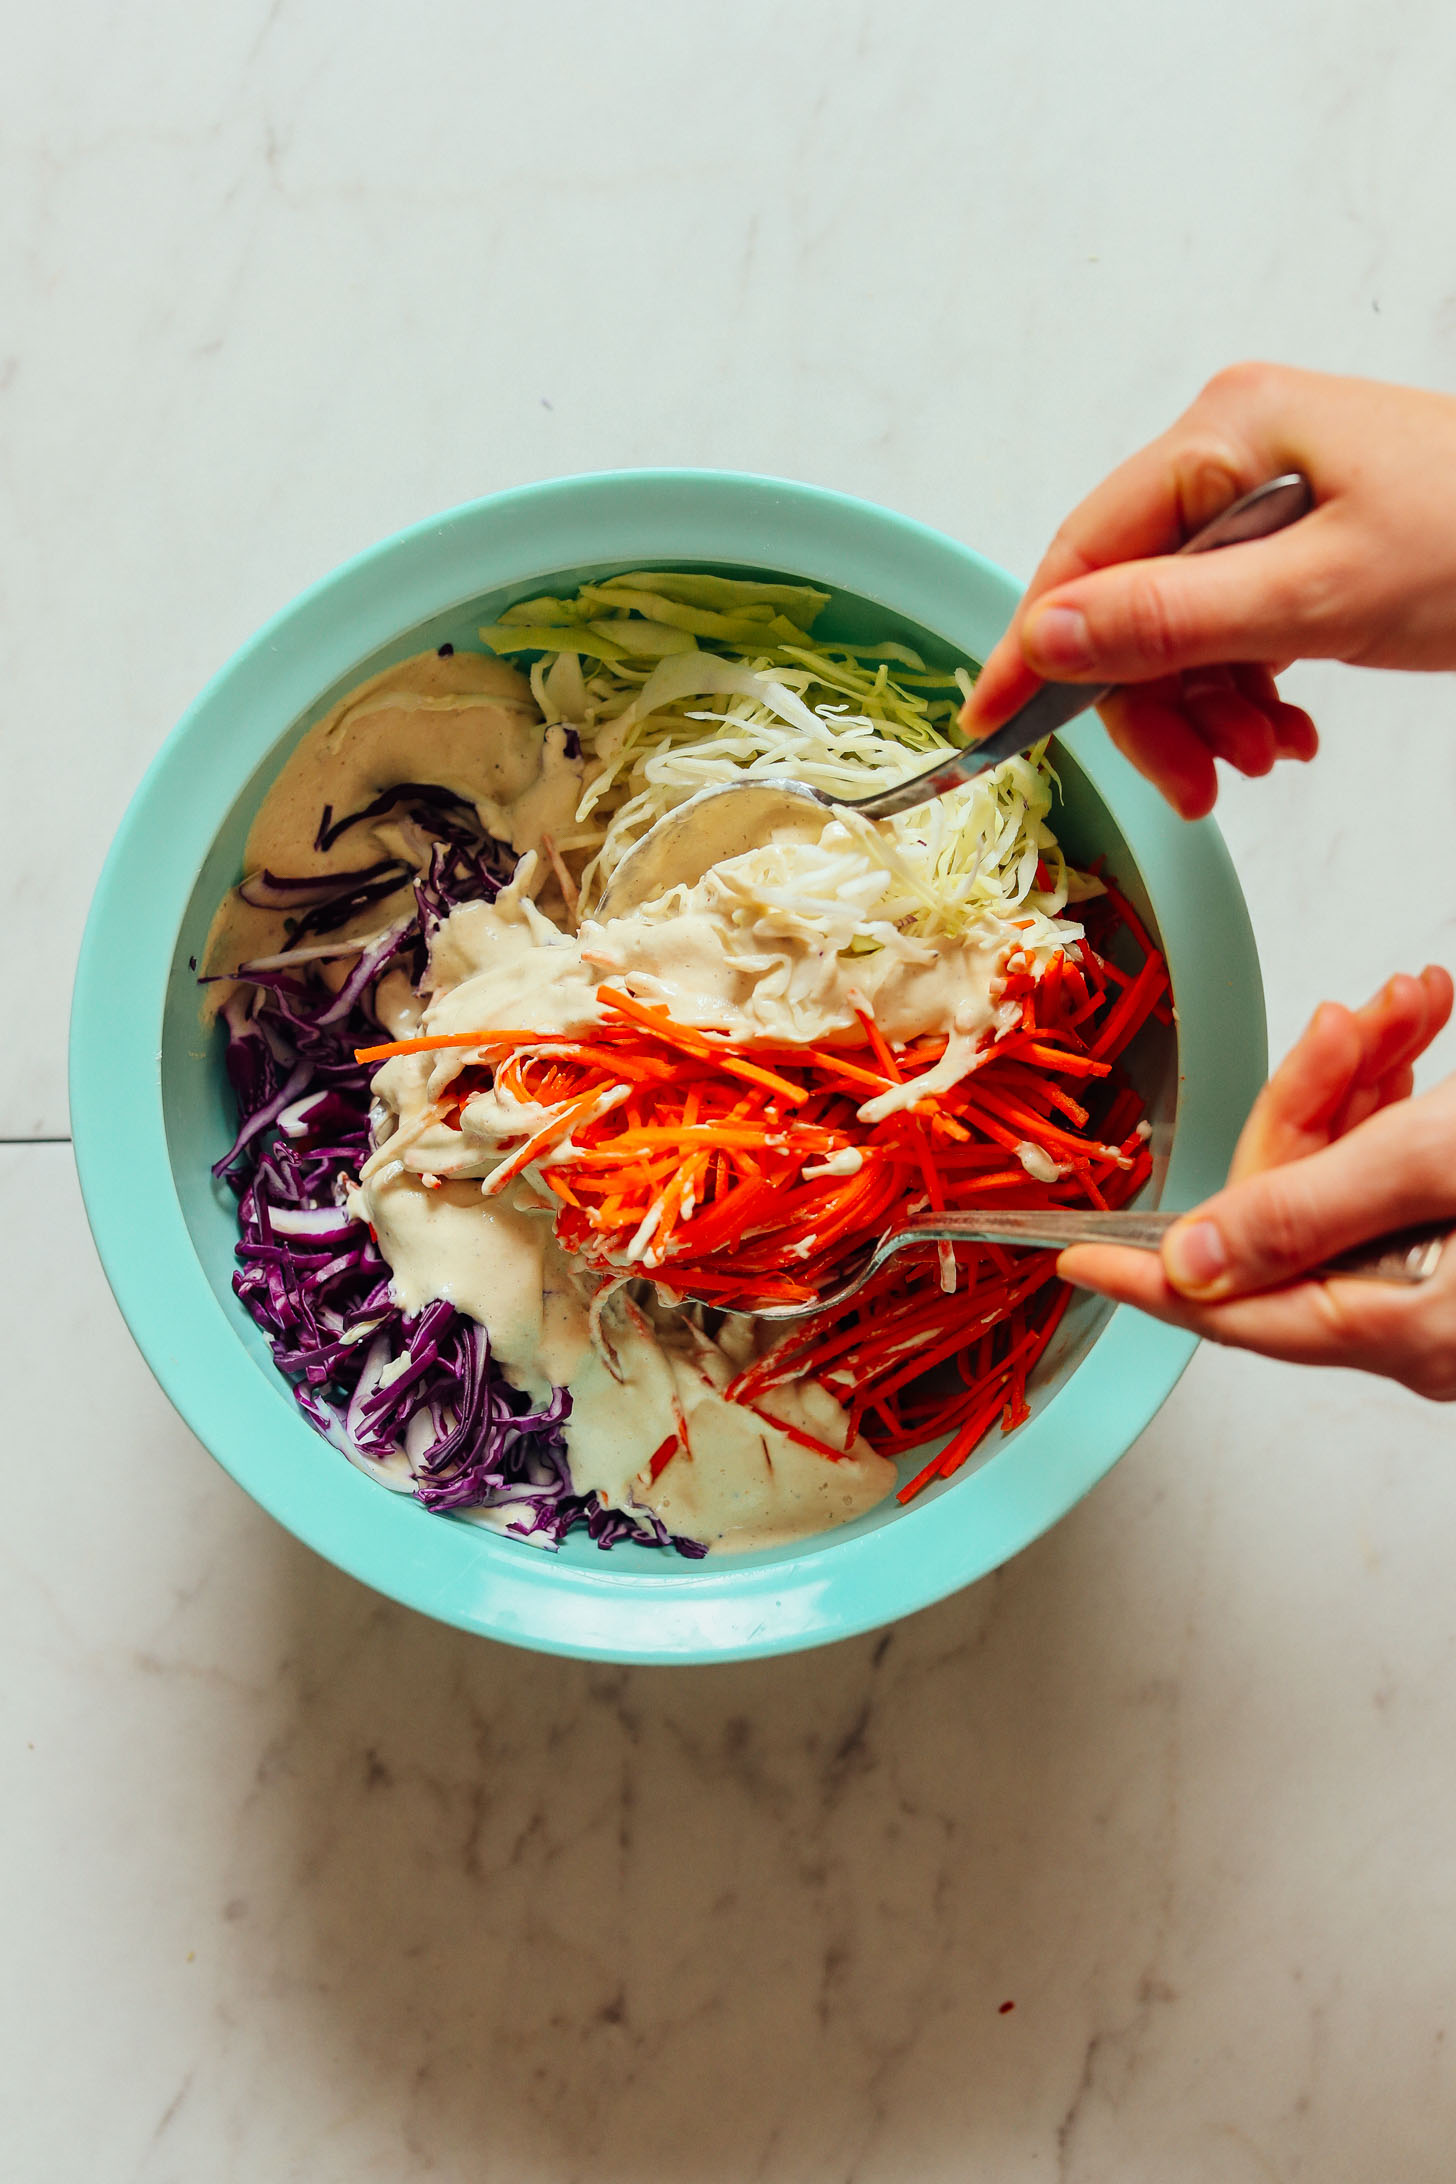 Using serving spoons to toss together vegetables and dressing for vegan coleslaw